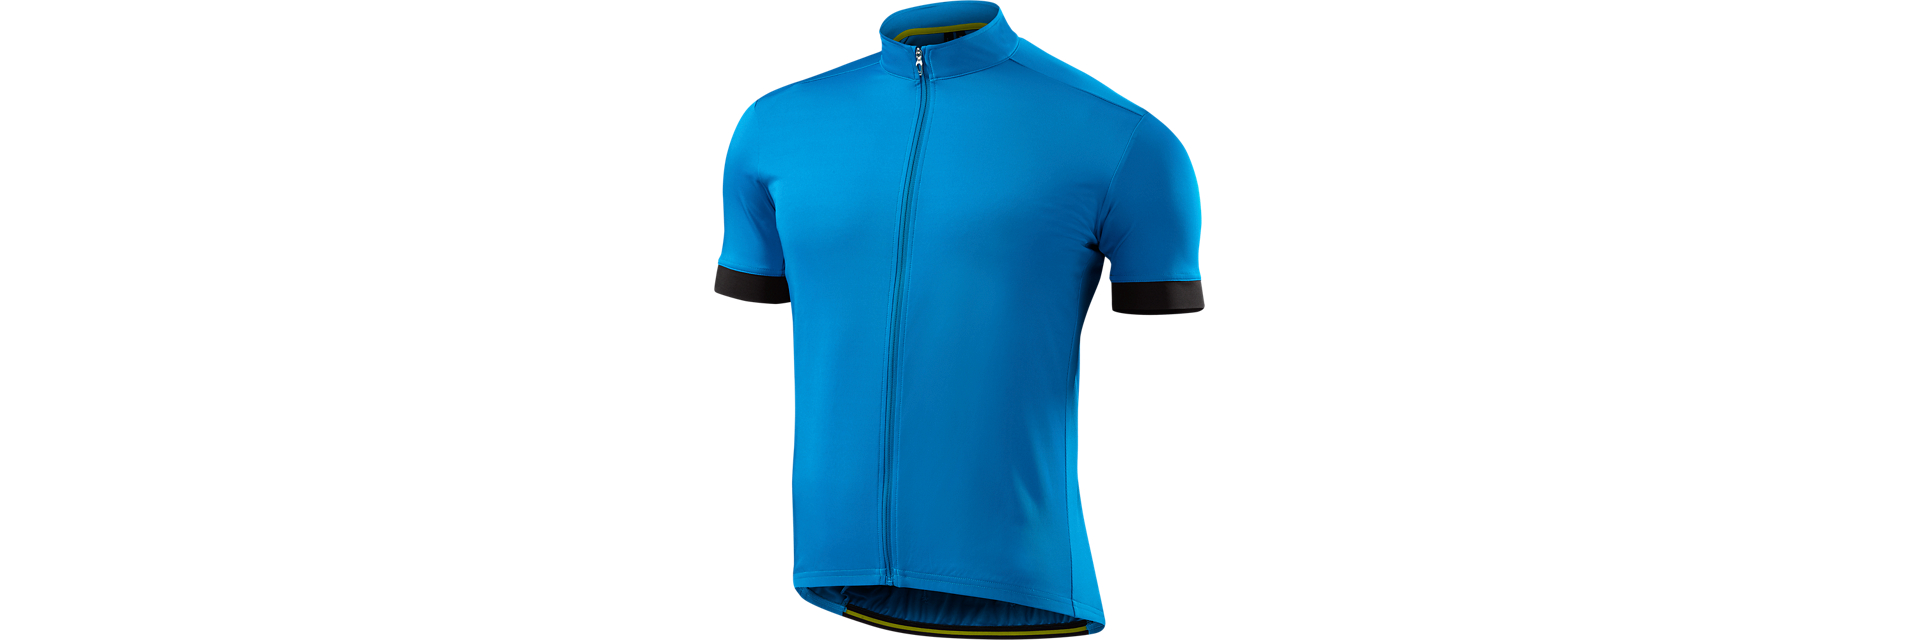 Details about Specialized RBX Sport Mens Jersey 2018 f931469ce